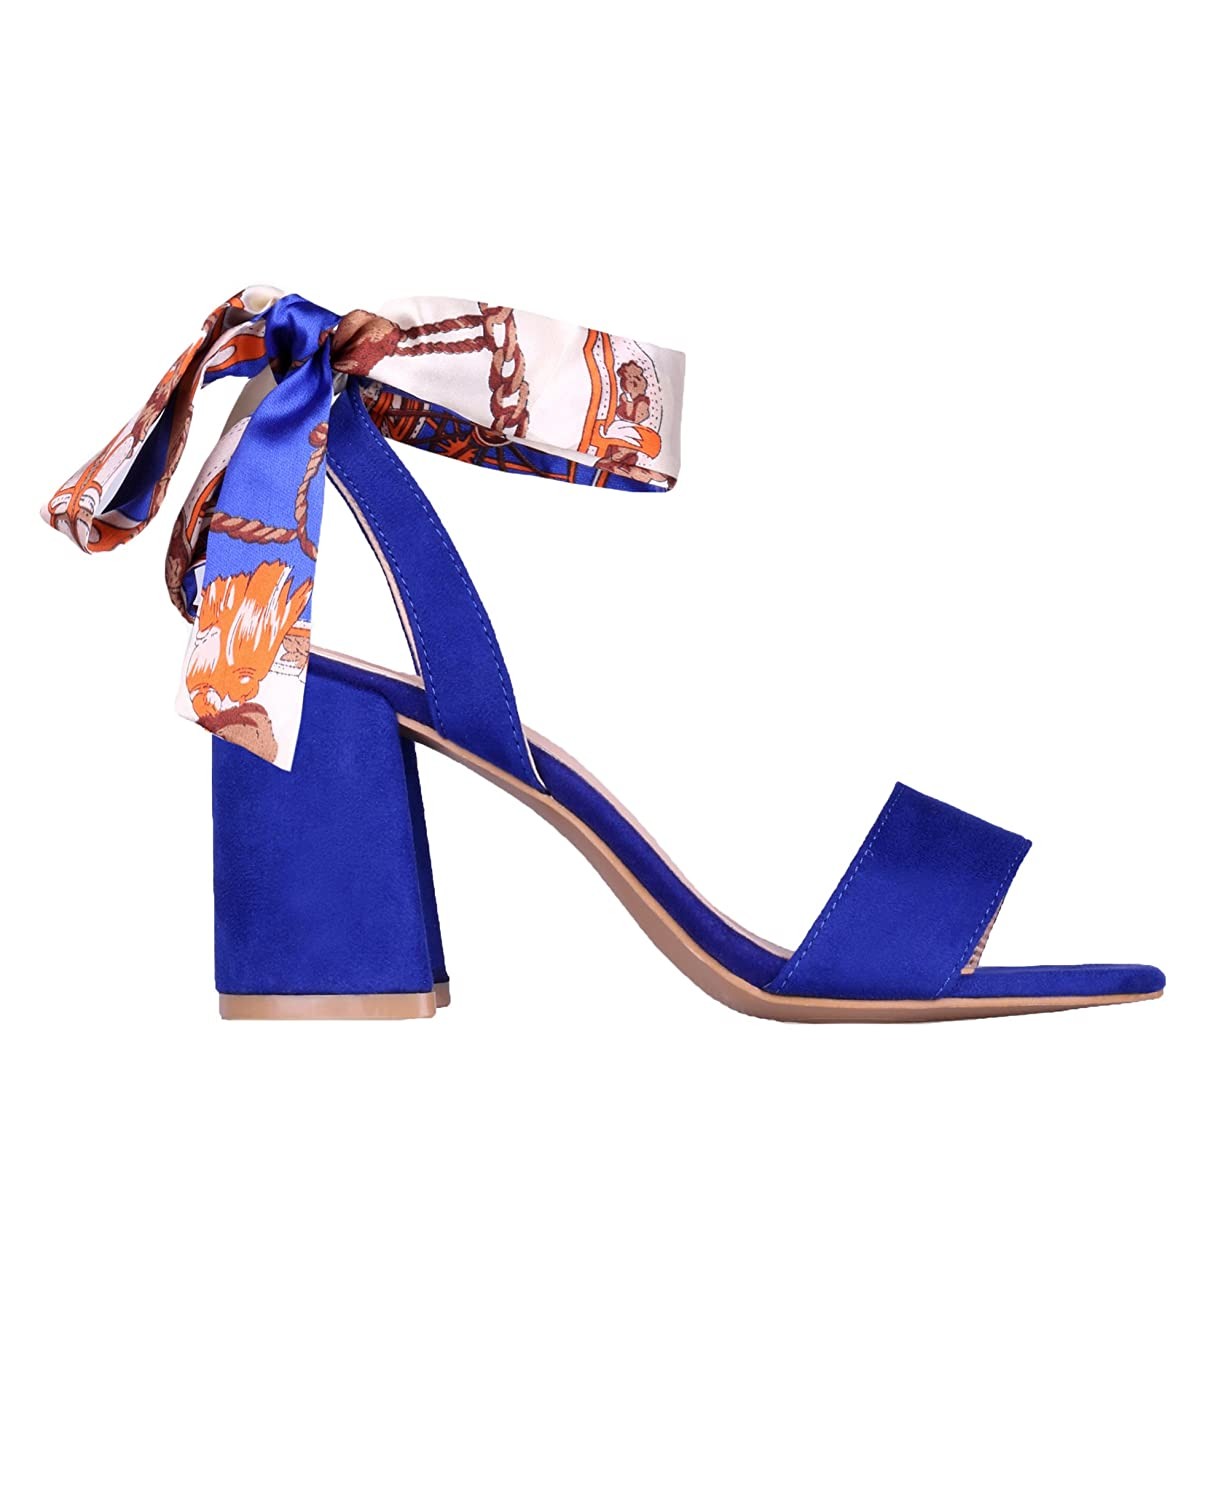 68d6660f31 KRISP 2344-ROY-3: Satin Wrap Block Heel Sandals: Amazon.ca: Shoes & Handbags